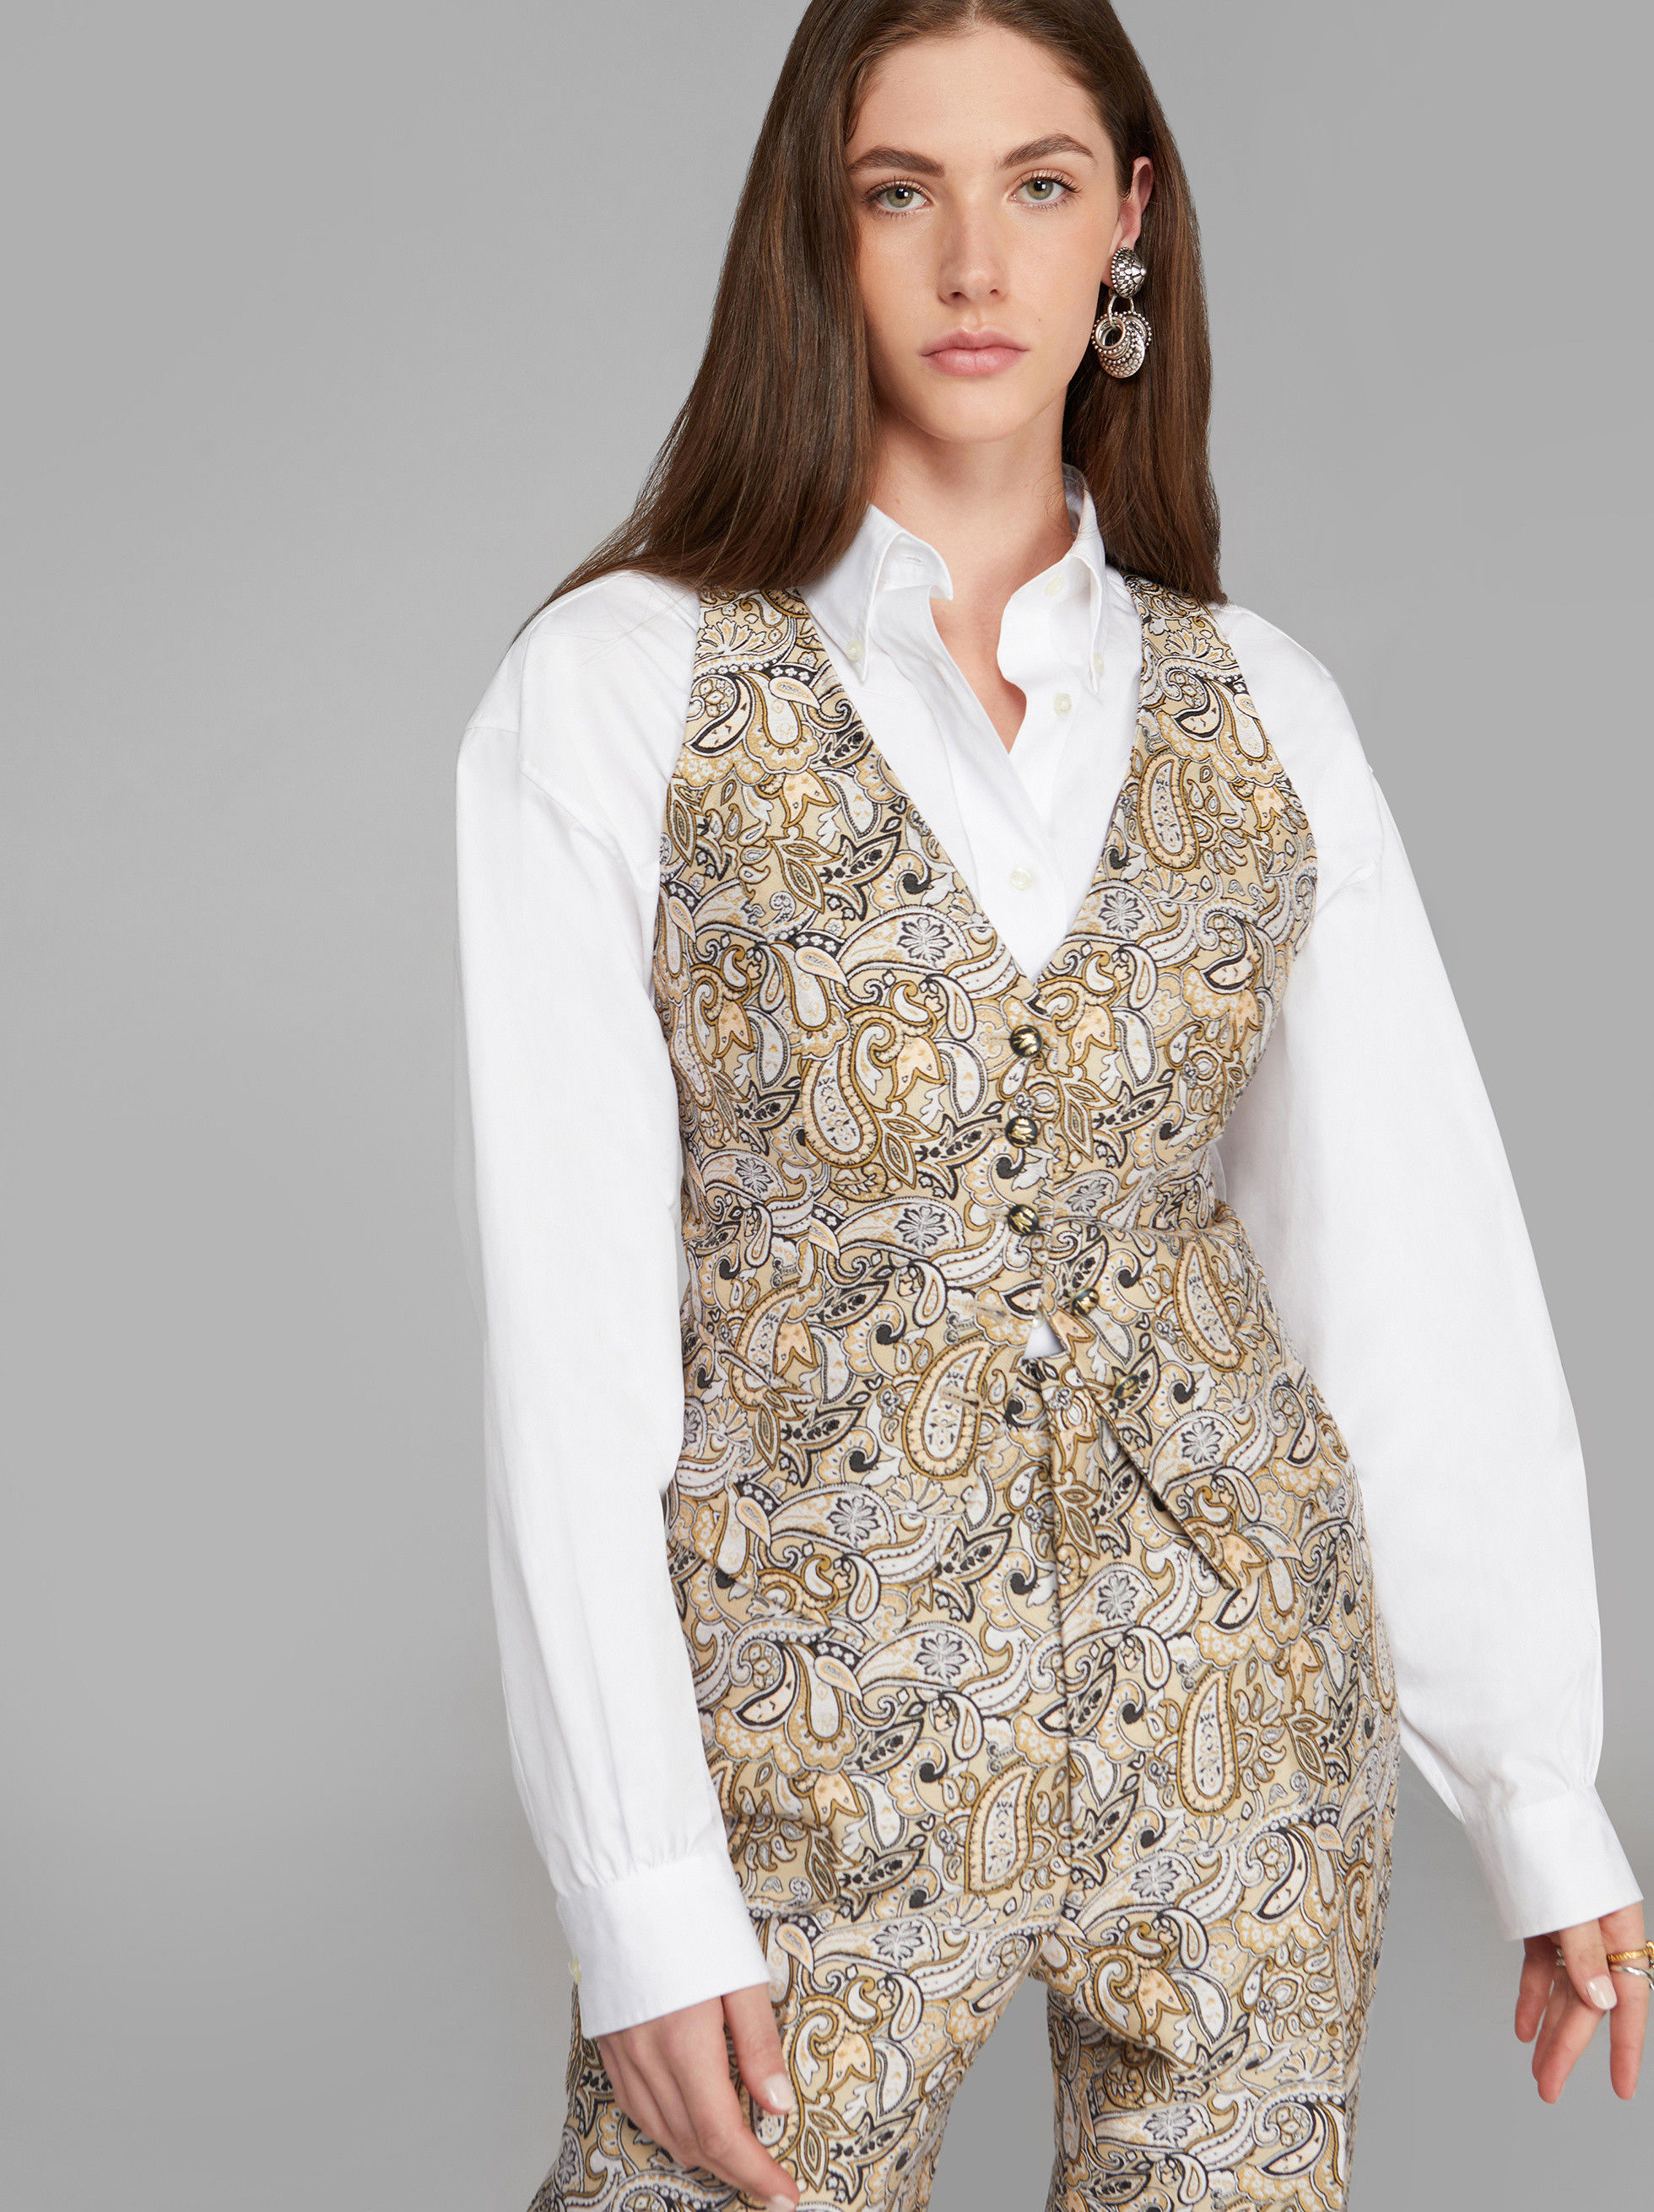 JACQUARD TAILORED GILET WITH PAISLEY PATTERNS